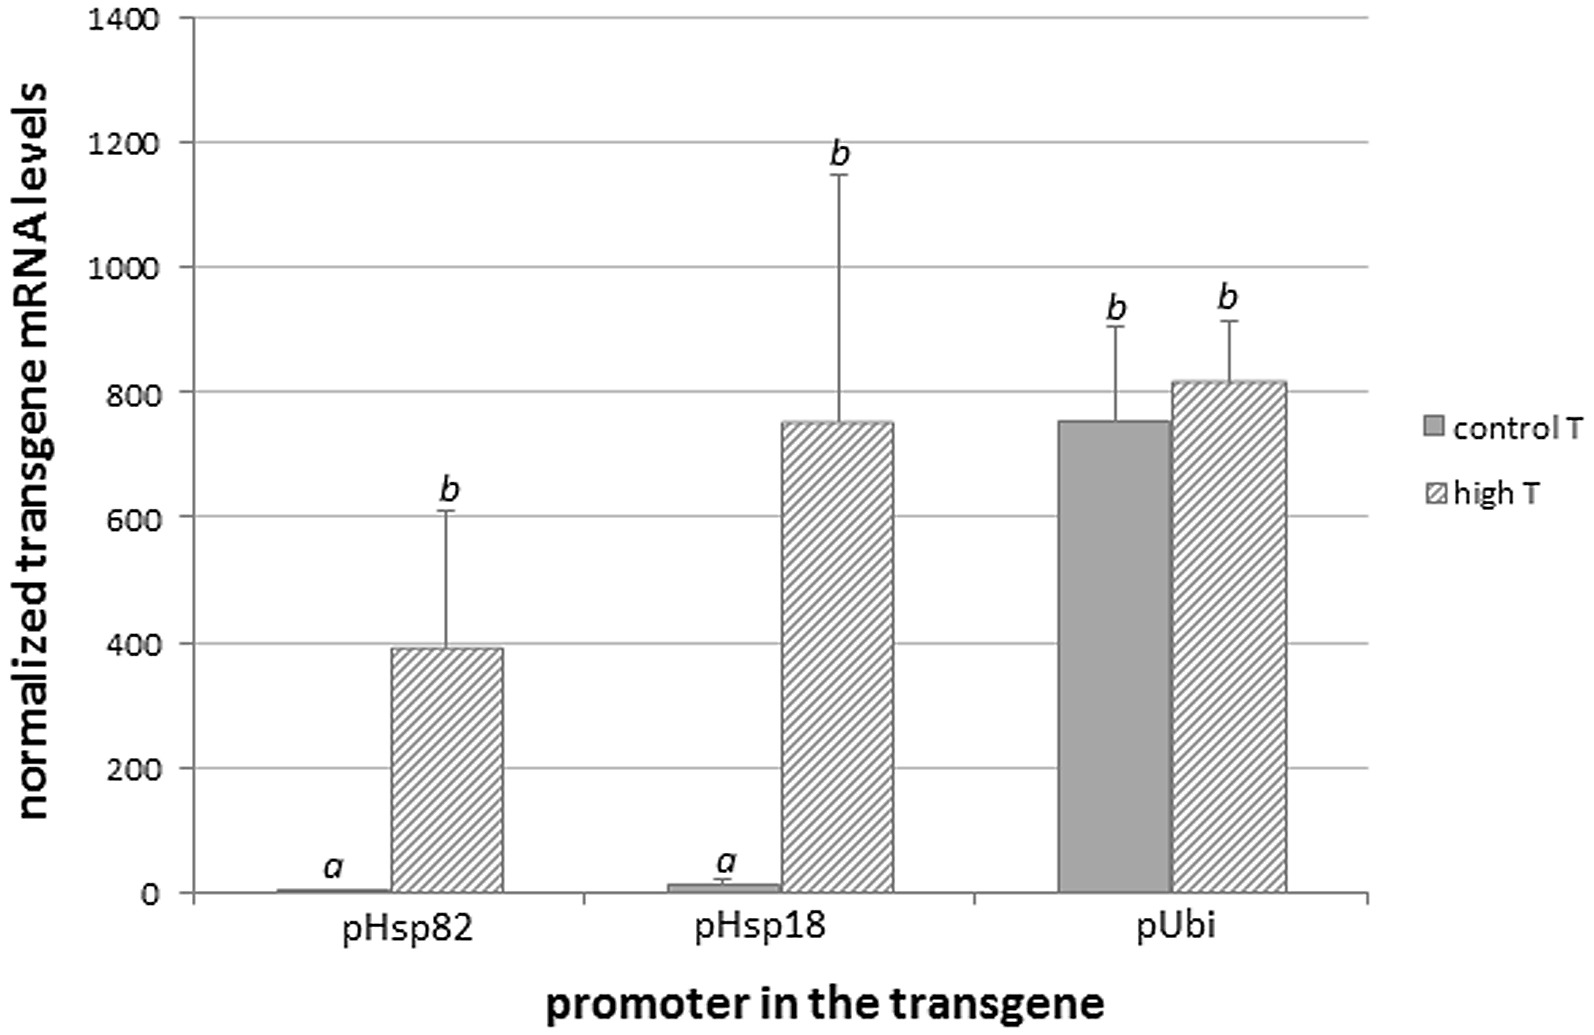 hight resolution of  expression levels in leaves of gm rice plants in which the reporter dsred tag54 was regulated by three different promoters phsp82 phsp18 and pubi